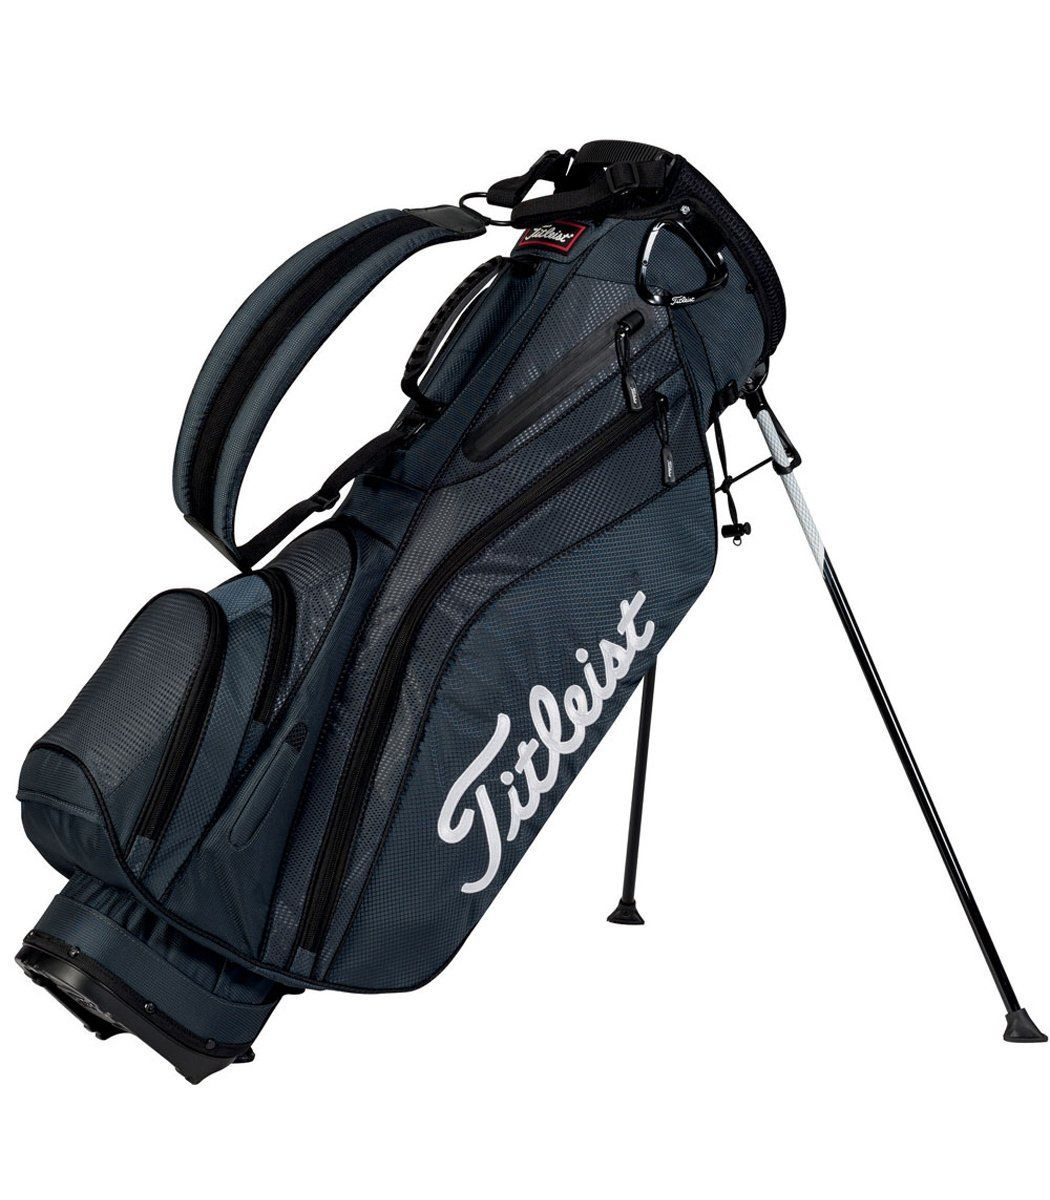 Titleist 2015 Single Strap Stand Bag Charcoal TB5SS81  38fcbe6212ff5